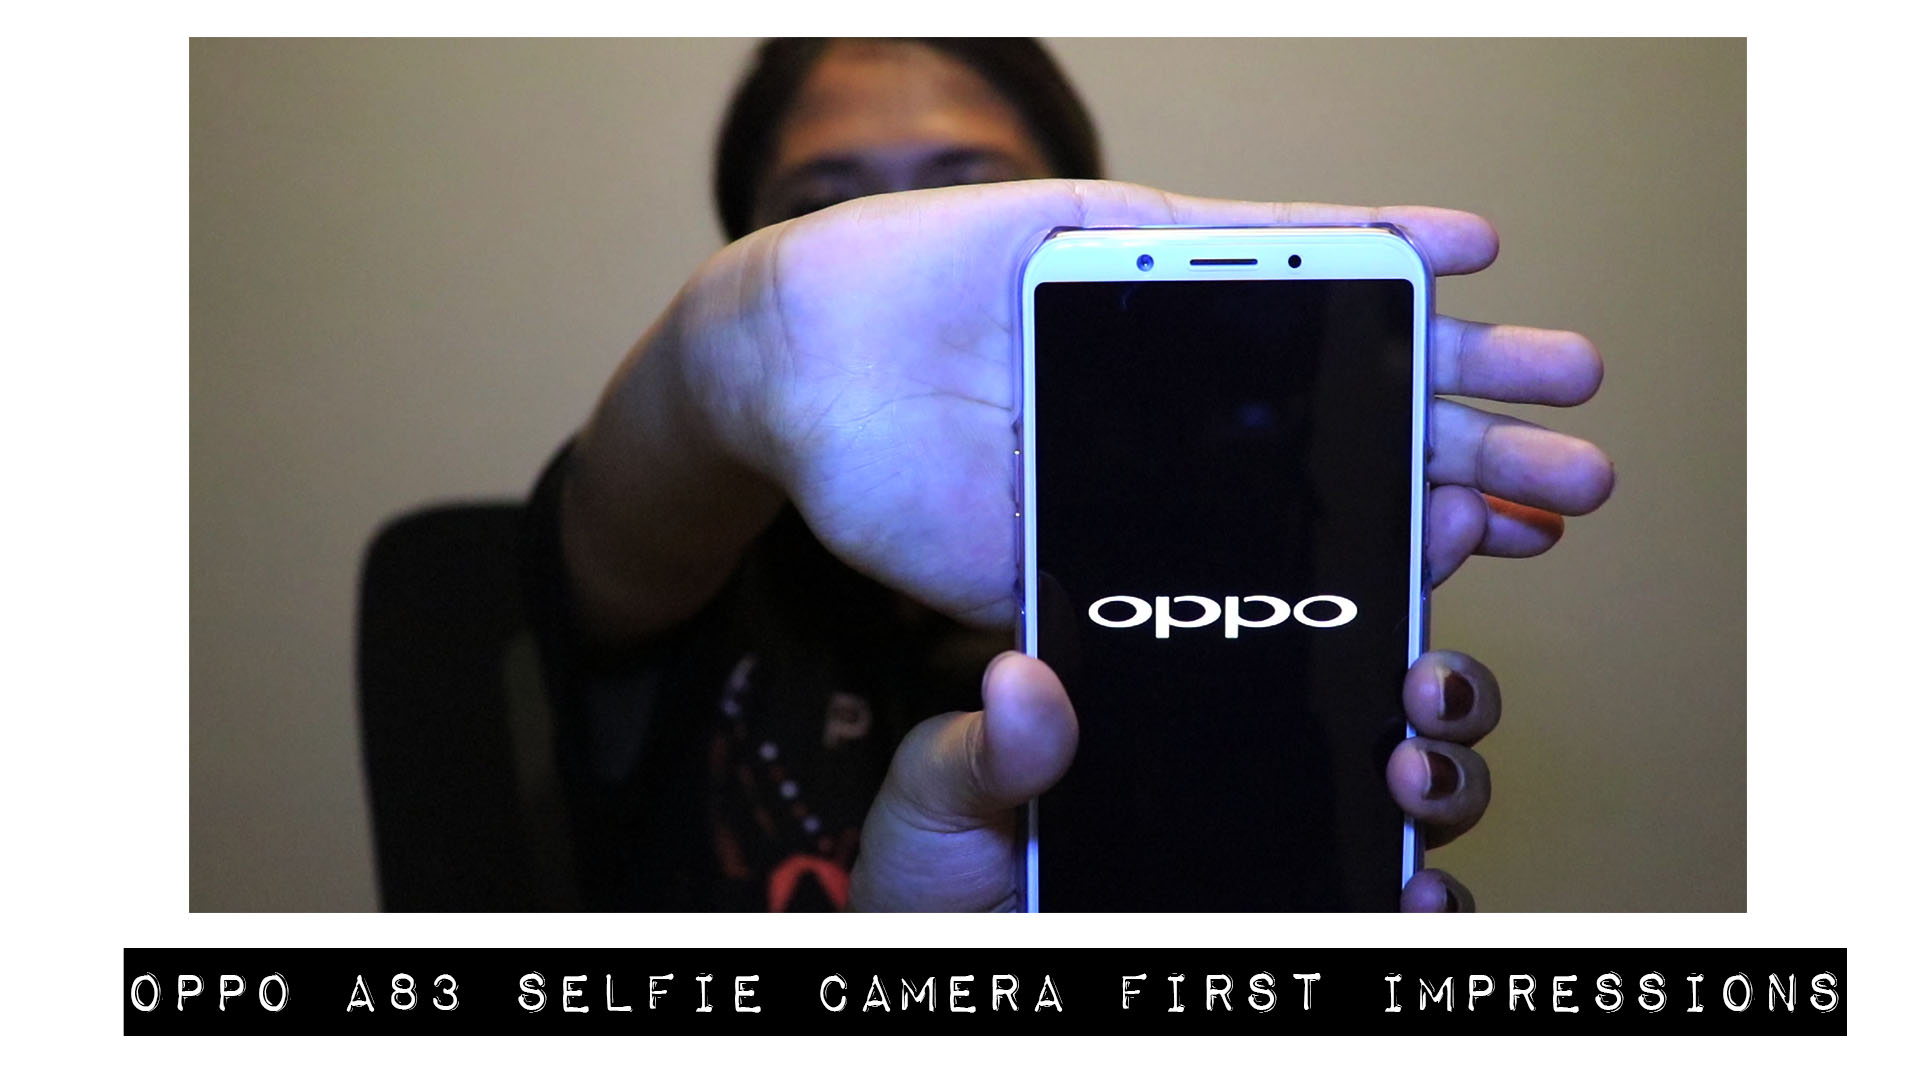 Tech Review (Blog & Vlog): P9,990.00 Oppo A83 Smart Selfie First Impressions